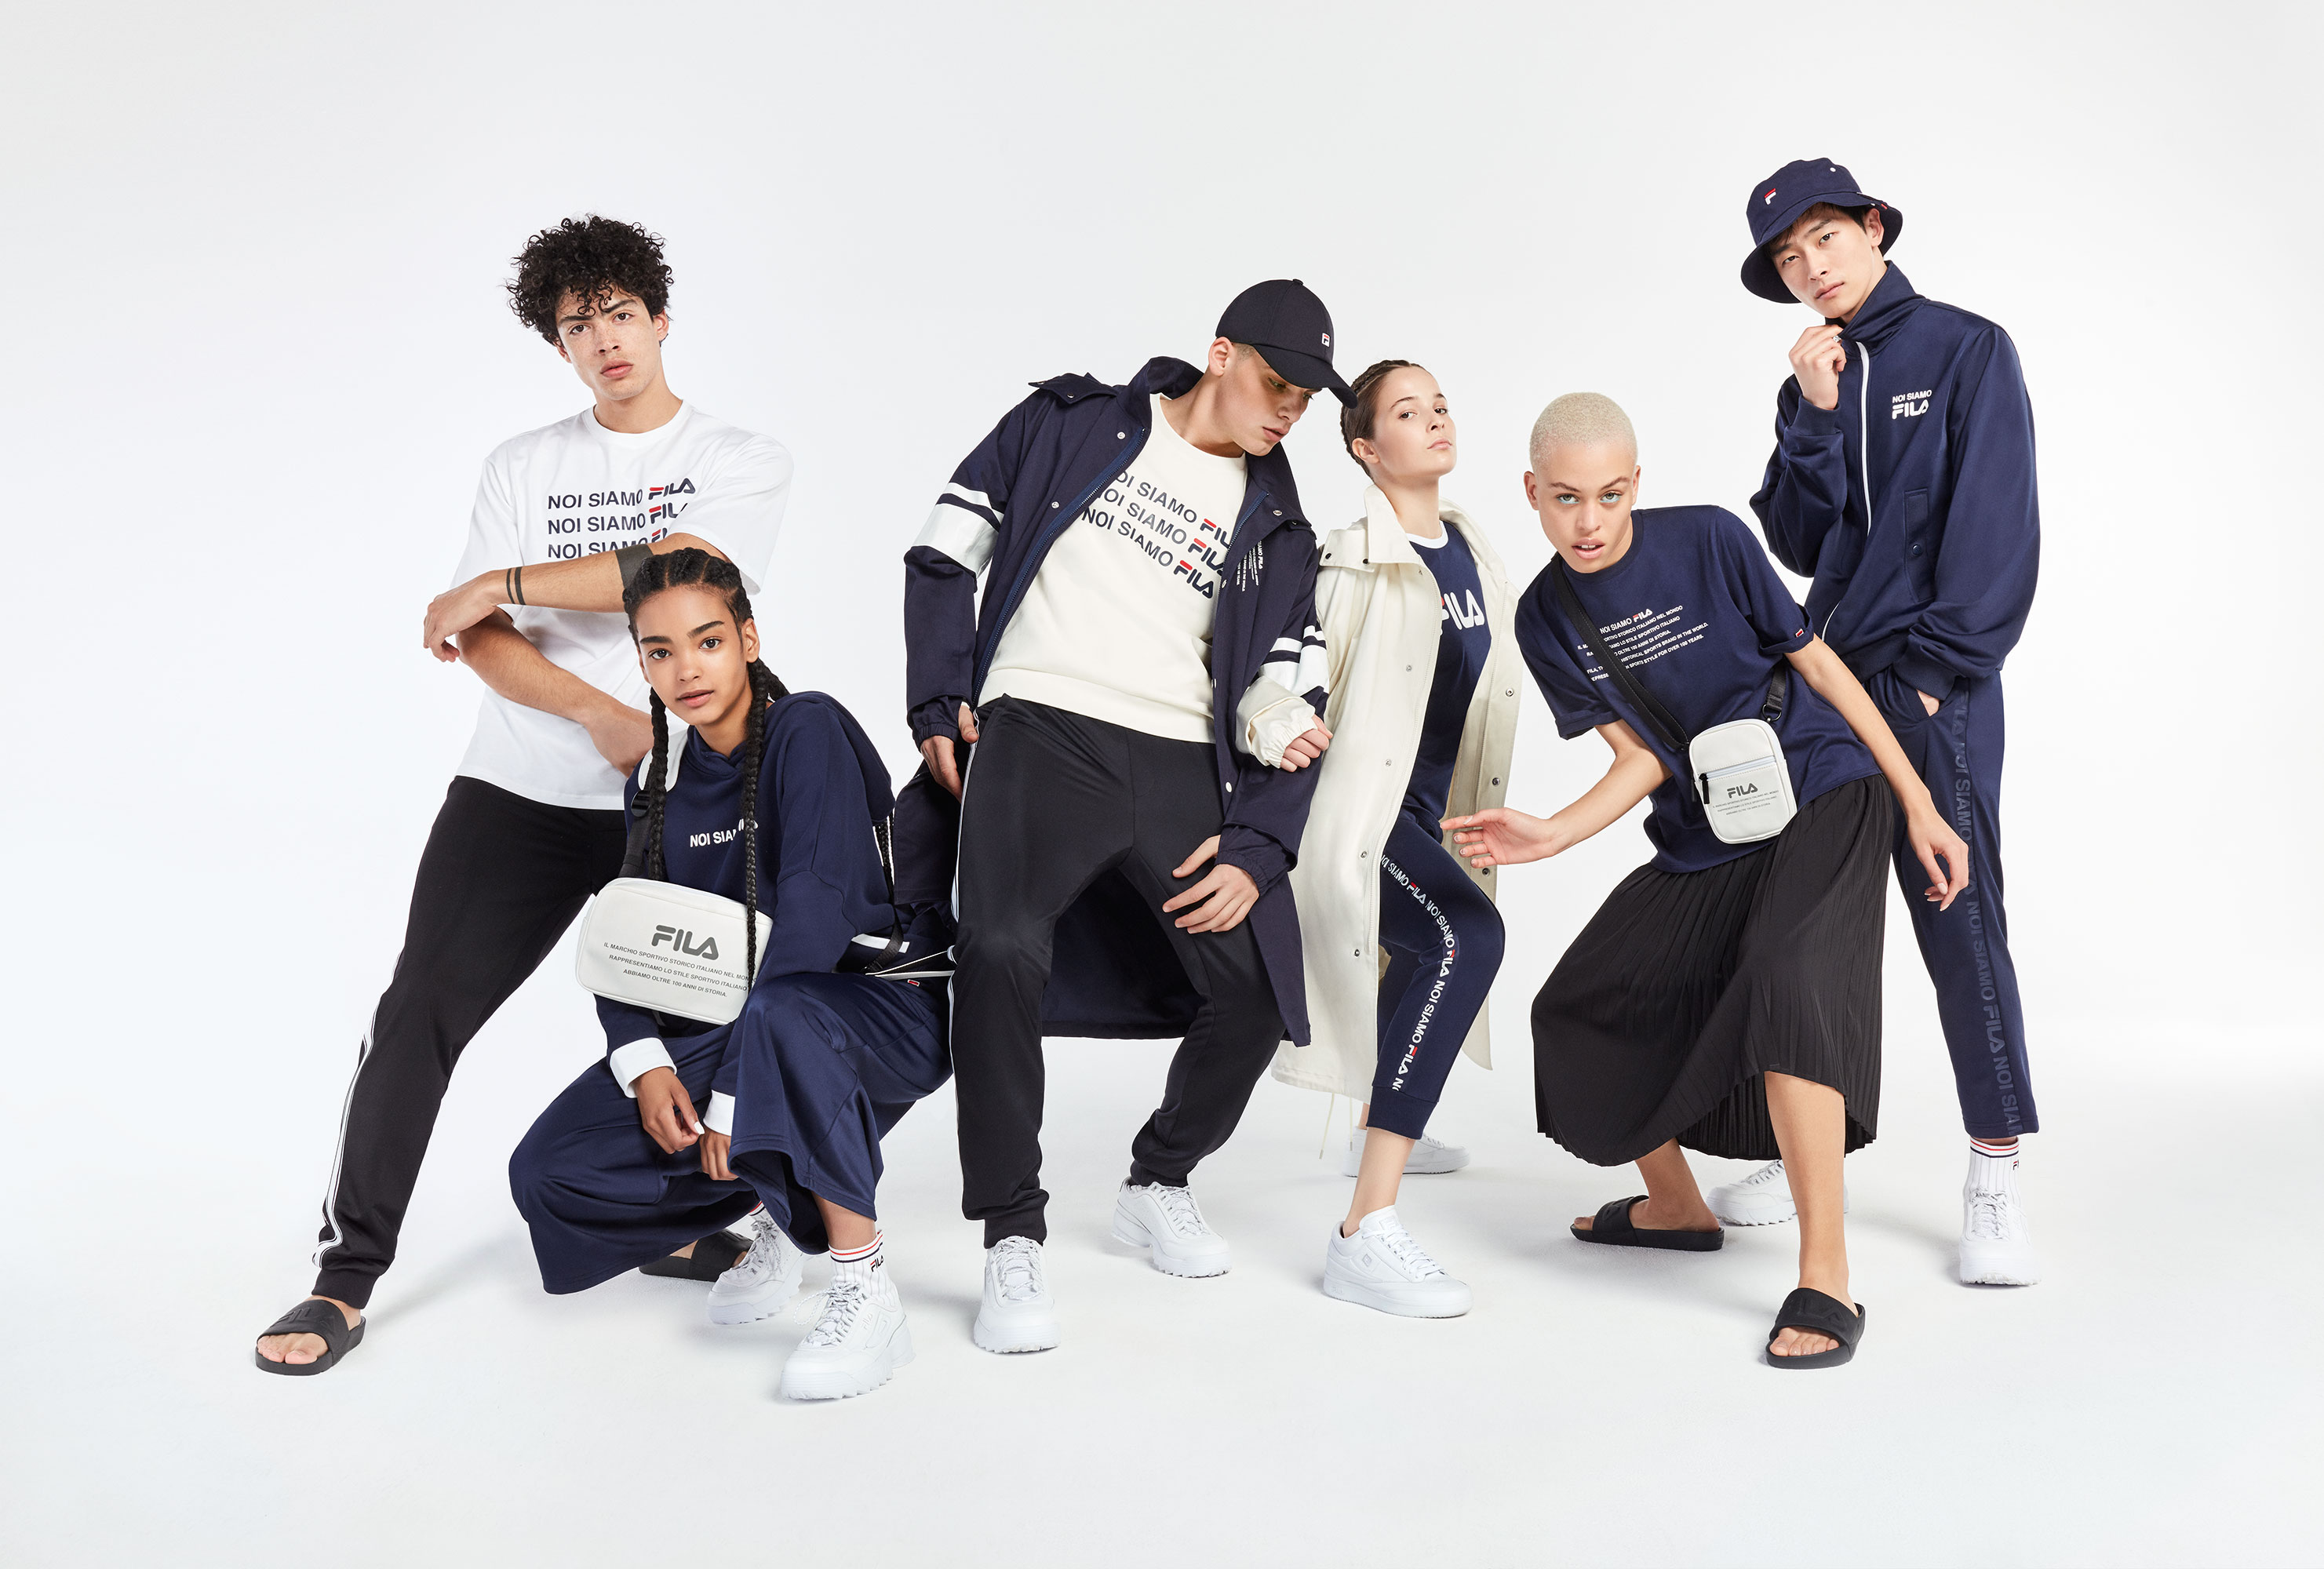 Fila Fusion Asia FW 18/19 | Dimitri Dimitracacos | Fila | Elle Decor | Sarah Grittini | Numerique Retouch Photo Retouching Studio